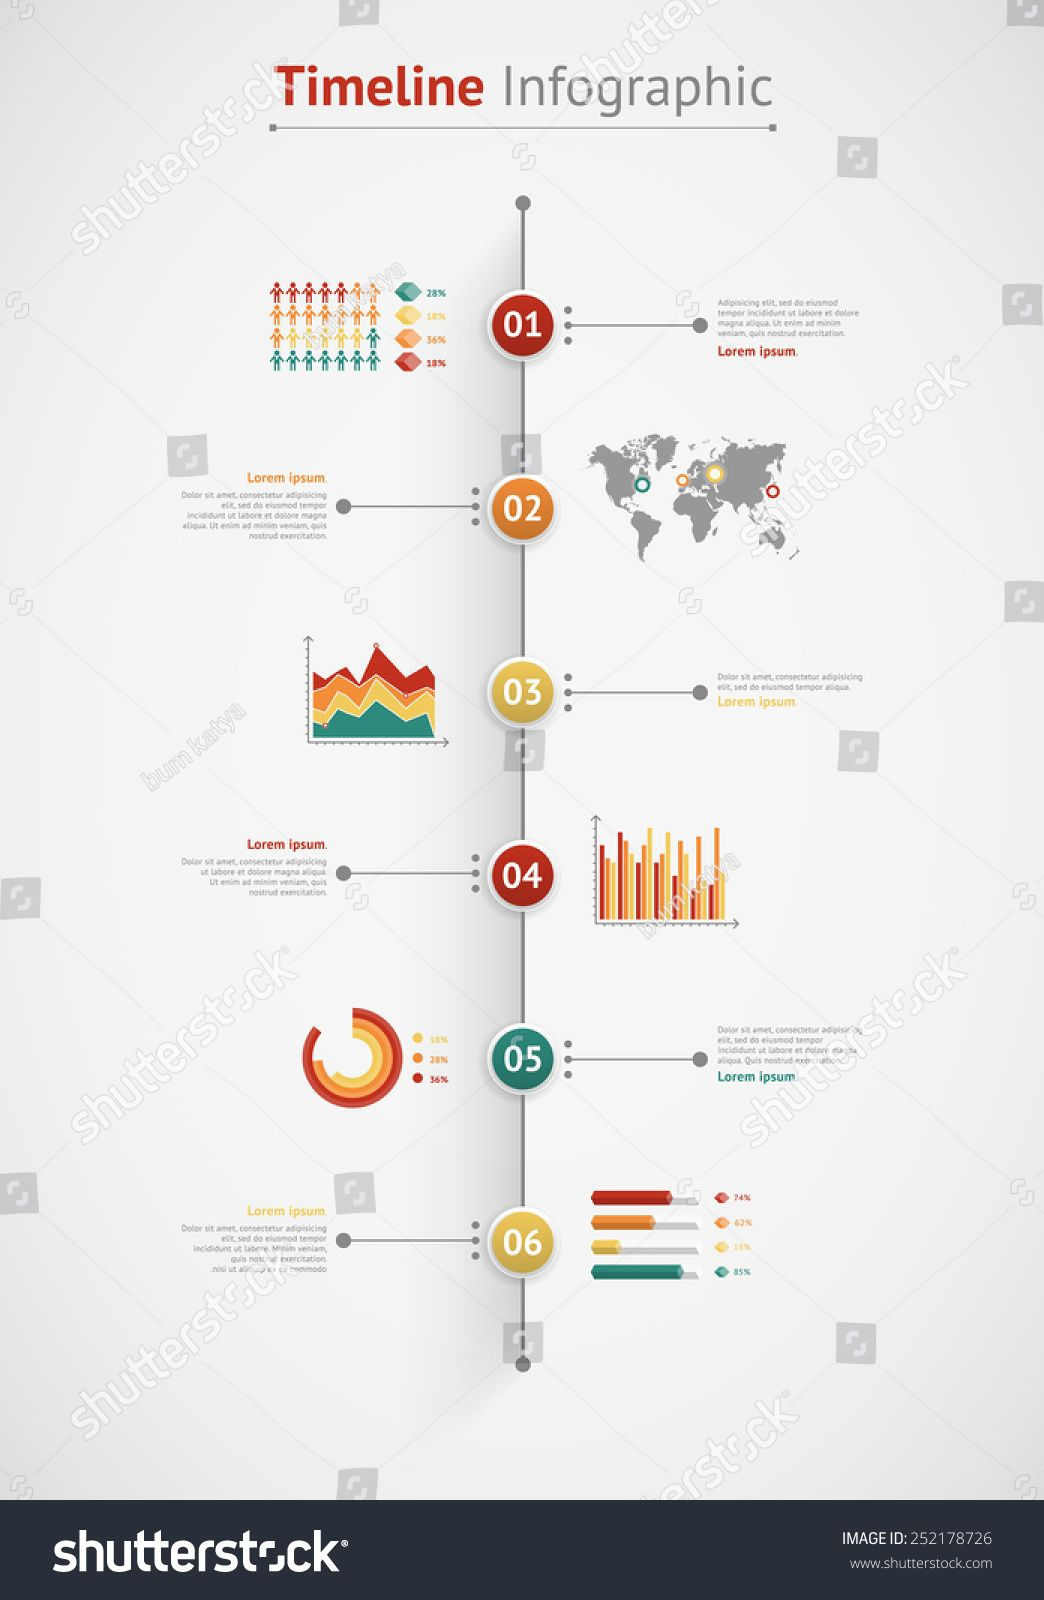 Timeline vector infographic world map theory pinterest infograma timeline vector infographic world map gumiabroncs Images